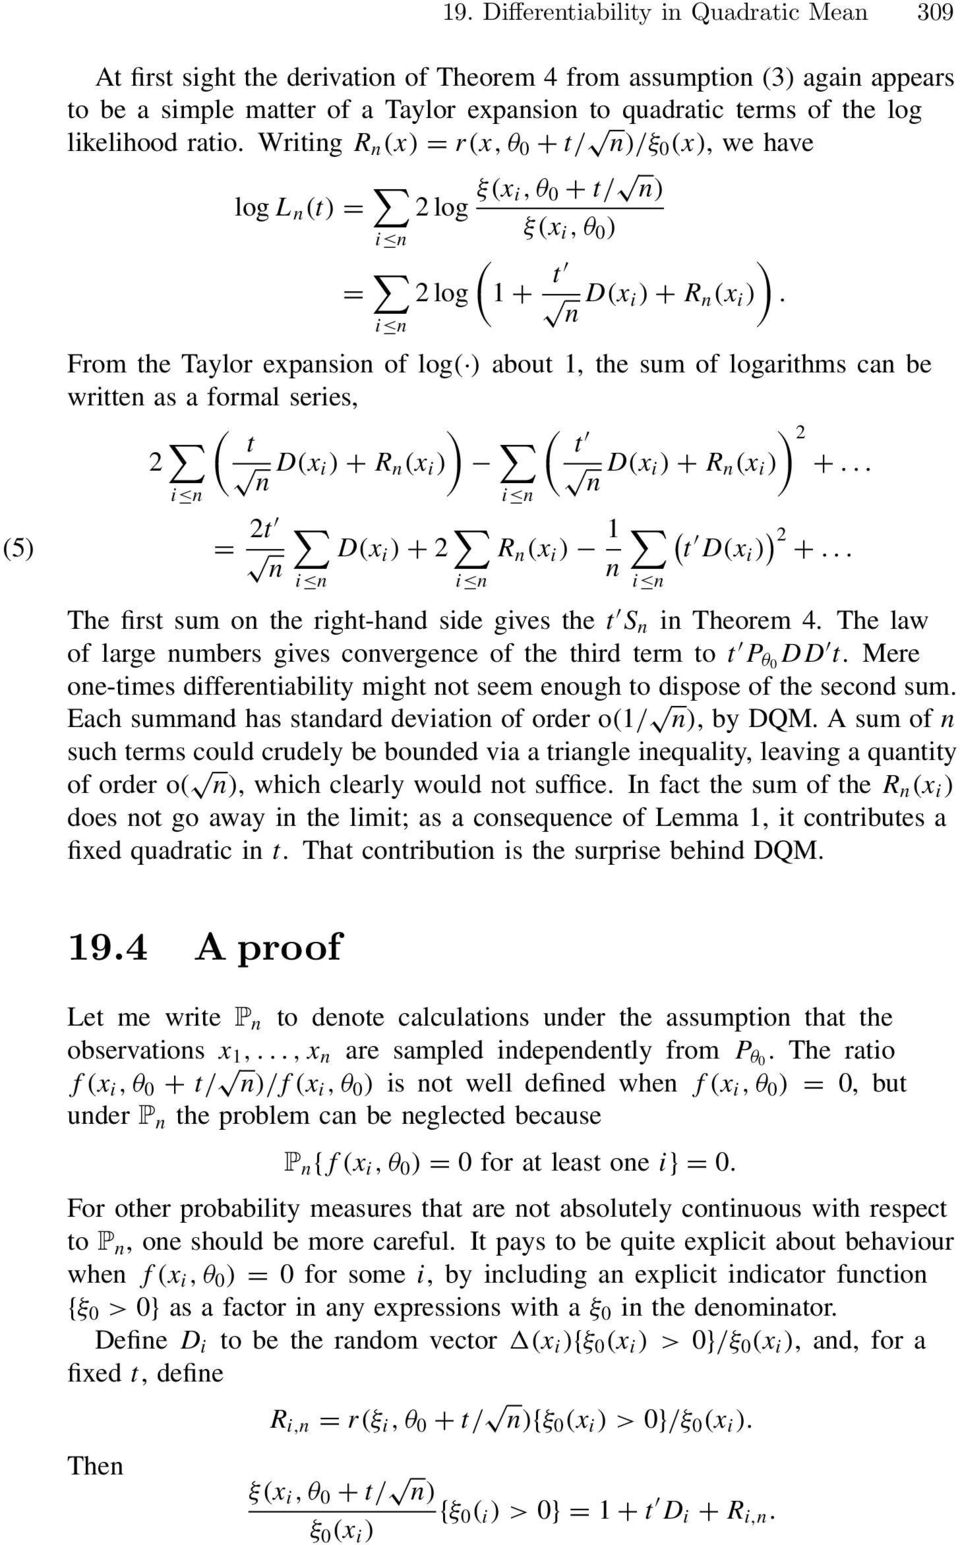 From the Taylor expasio of log( ) about 1, the sum of logarithms ca be writte as a formal series, 2 ( ) t D(x i ) + R (x i ) ( t 2 D(x i ) + R (x i )) +.